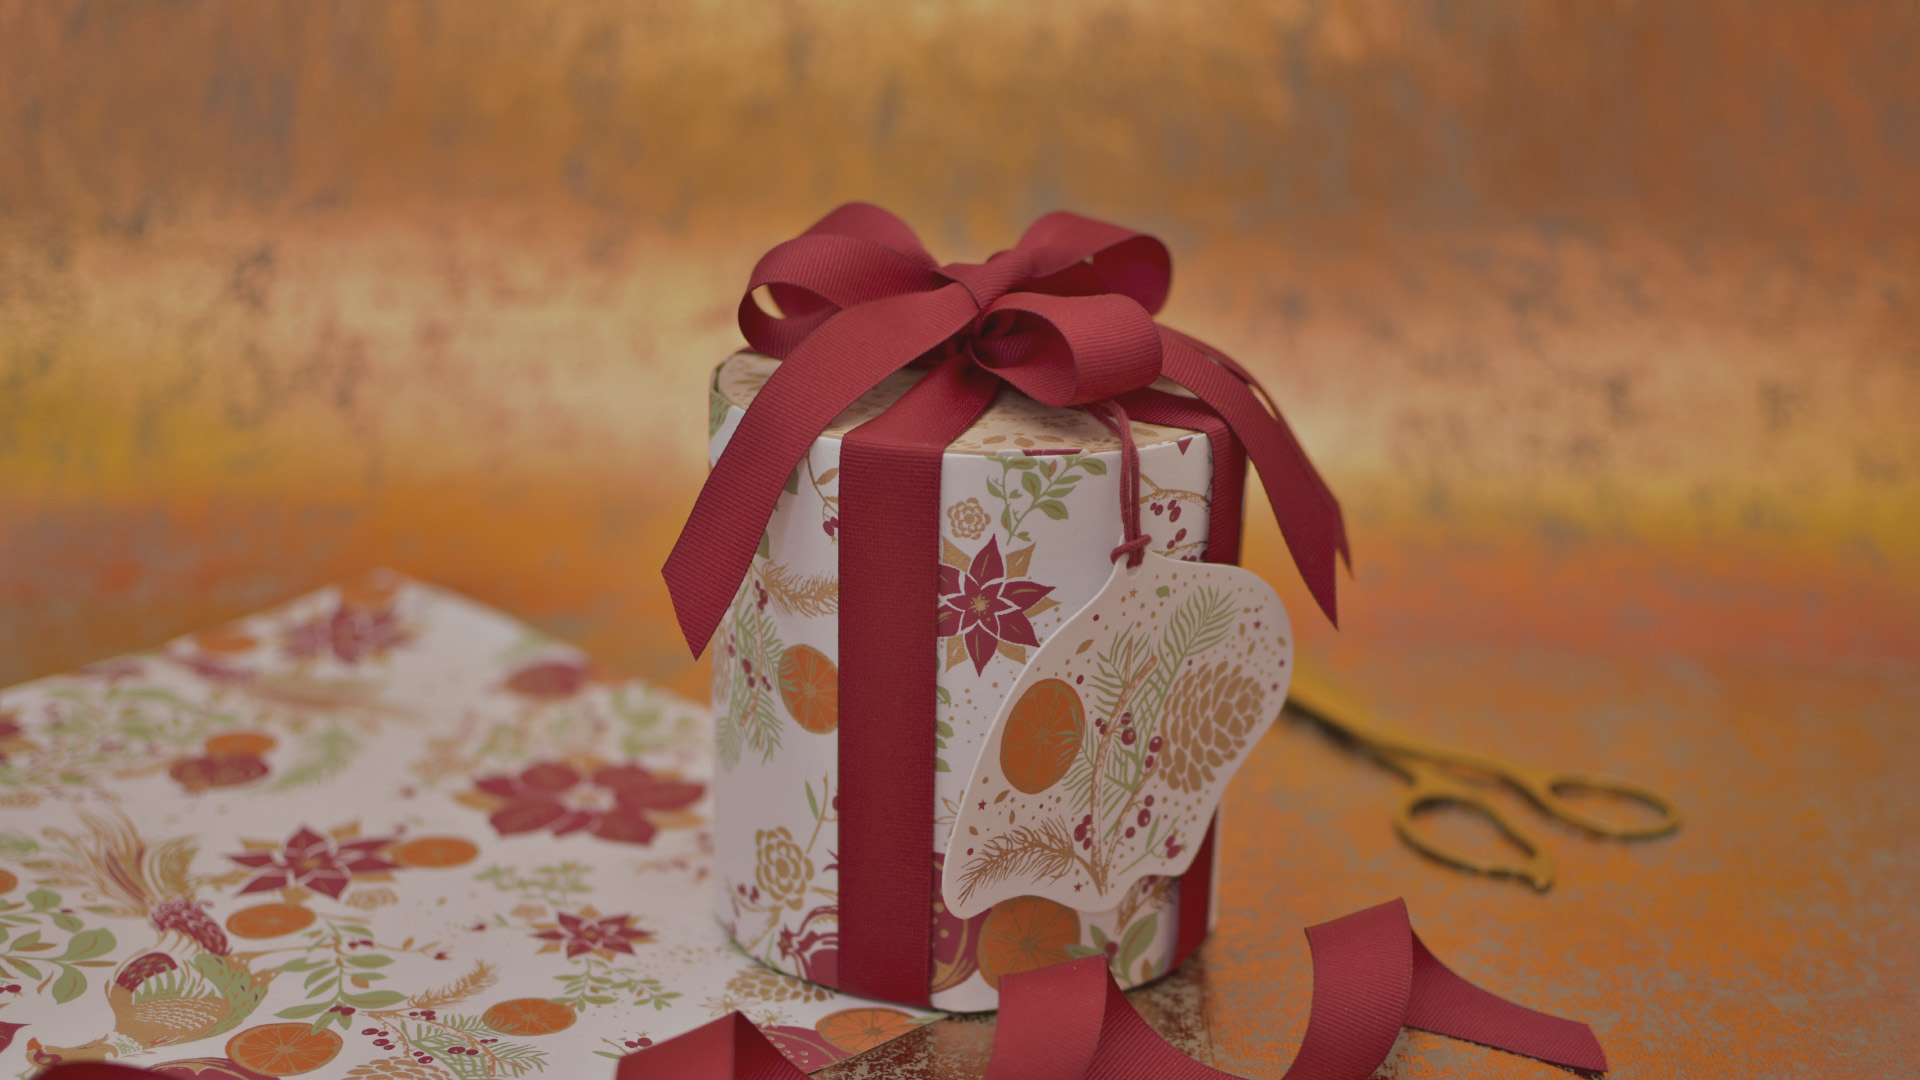 Stack of gifts wrapped in pink paper with red ribbon.